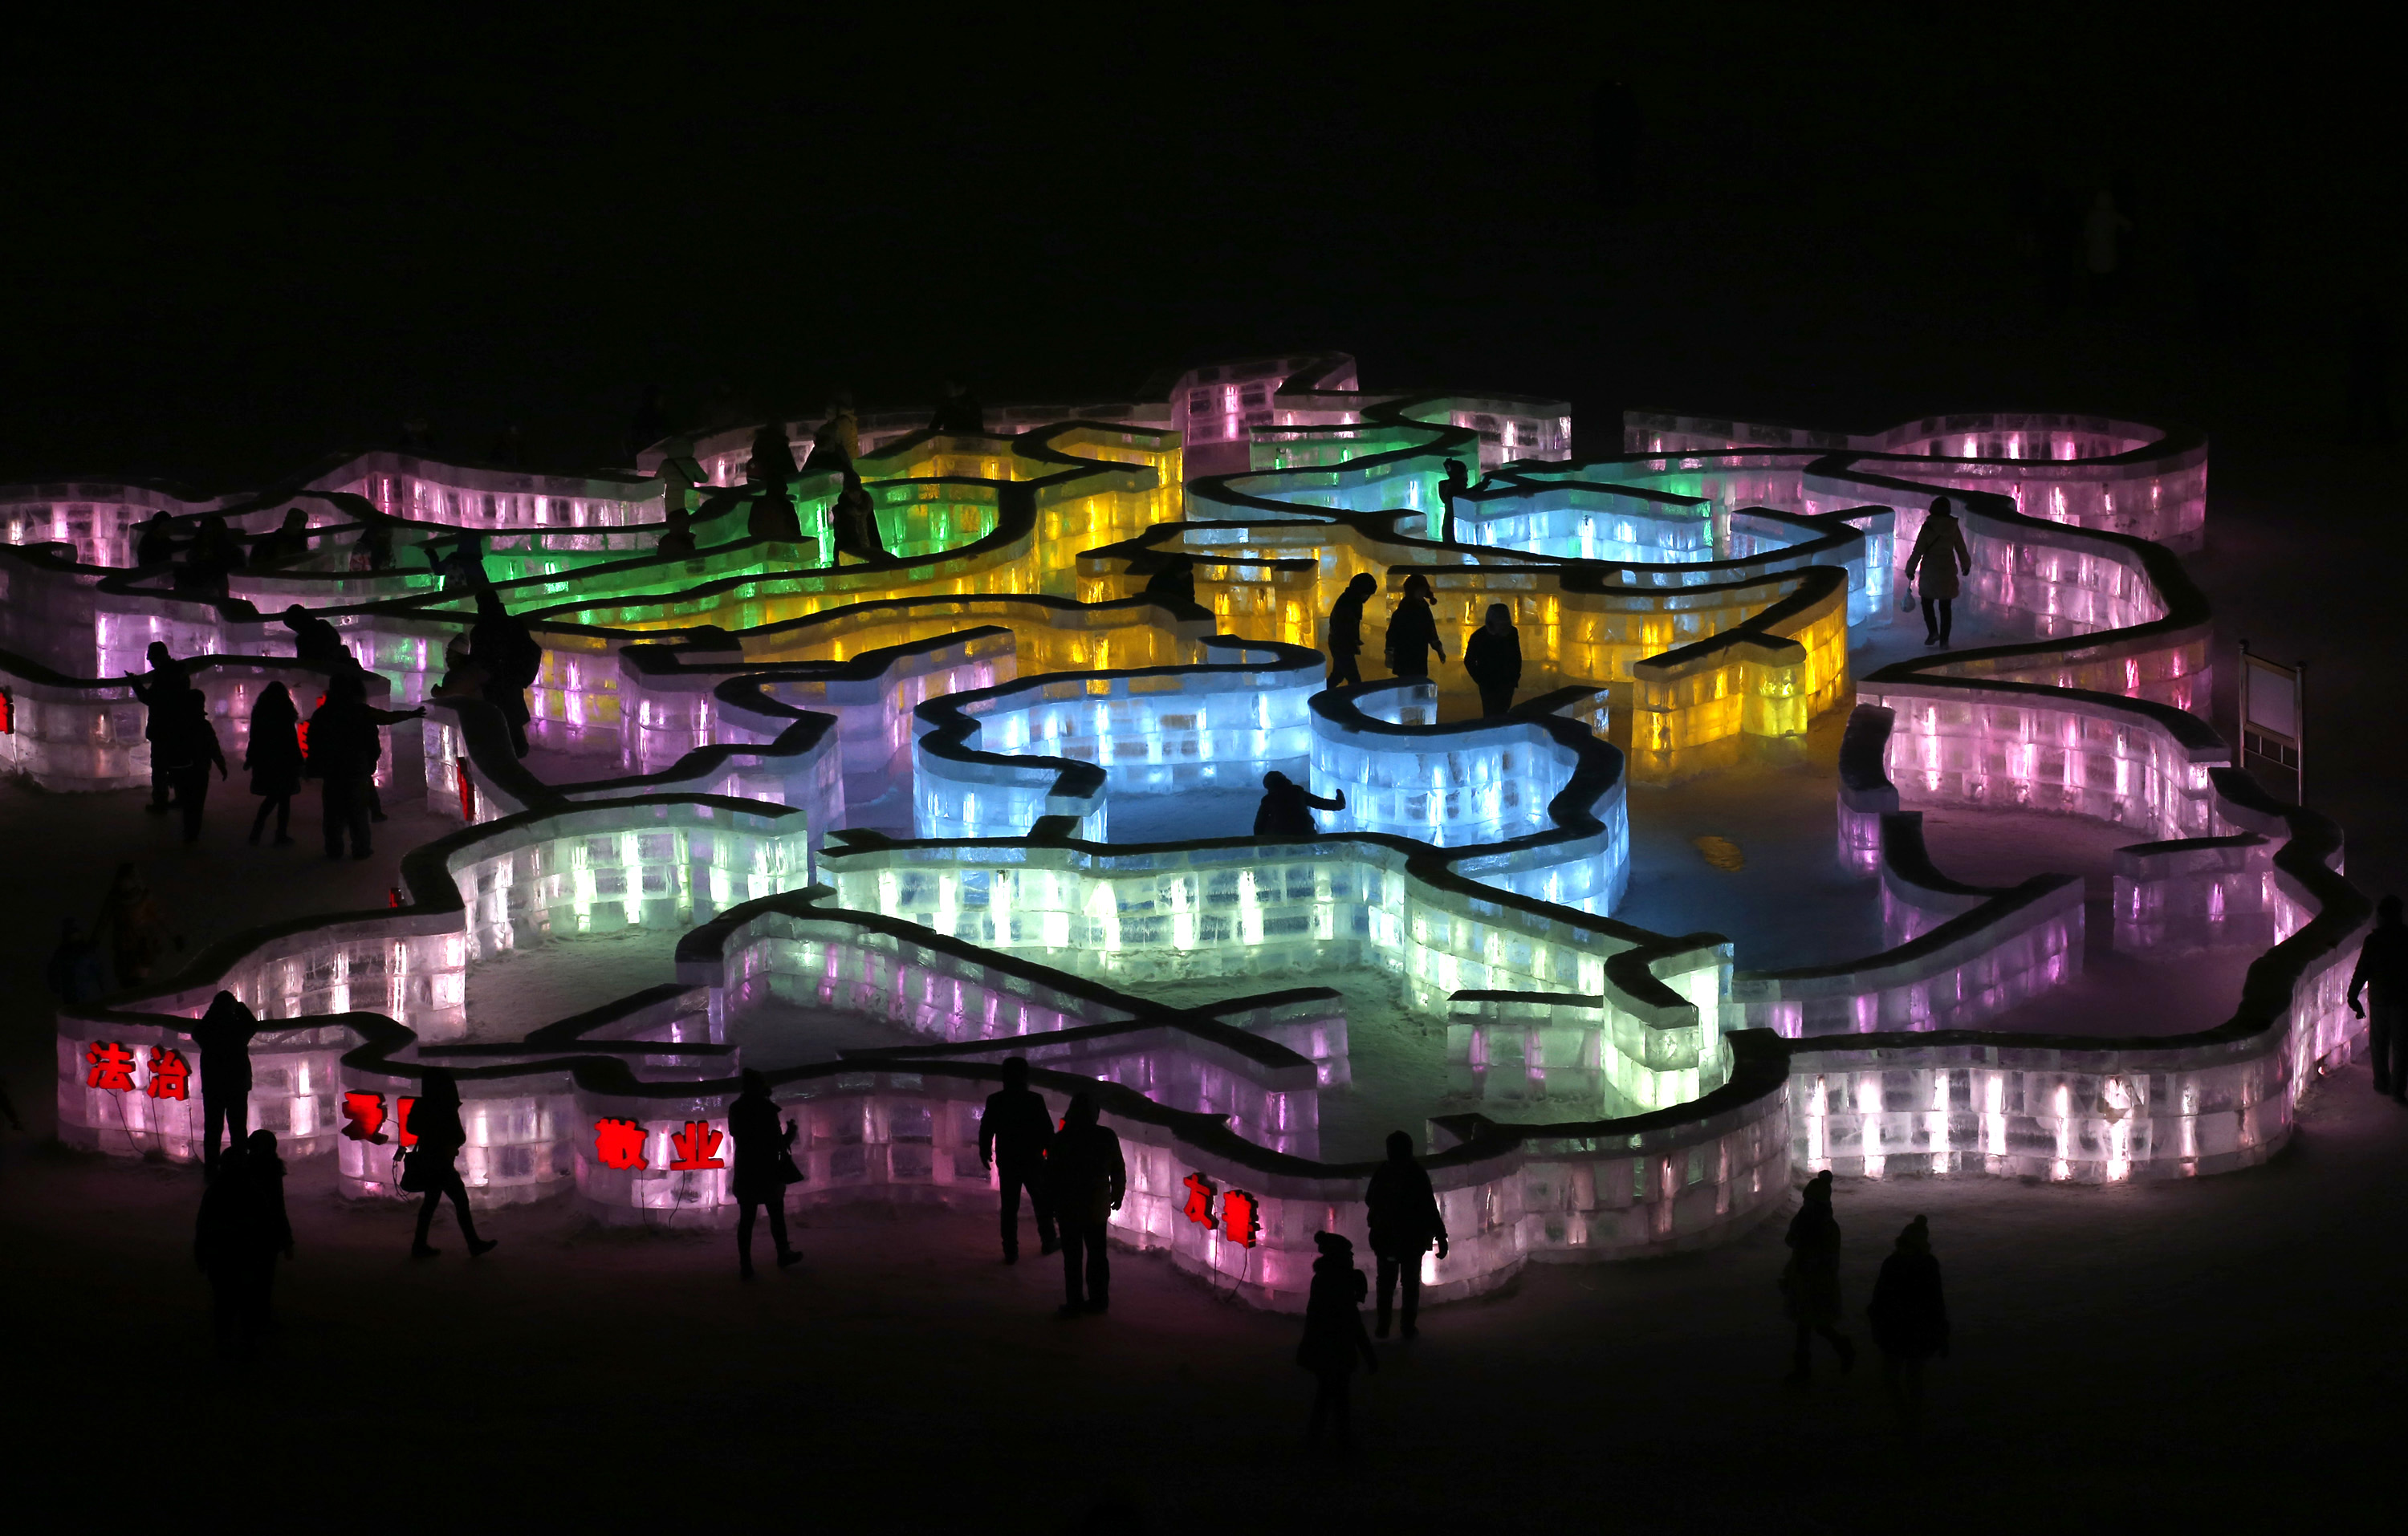 People visit a maze which was built by ice bricks and illuminated by coloured lights during a trial operation ahead of the 31st Harbin International Ice and Snow Festival in the northern city of Harbin, Heilongjiang province, January 4, 2015. The winter festival will be officially opened on January 5, 2015. REUTERS/Kim Kyung-Hoon